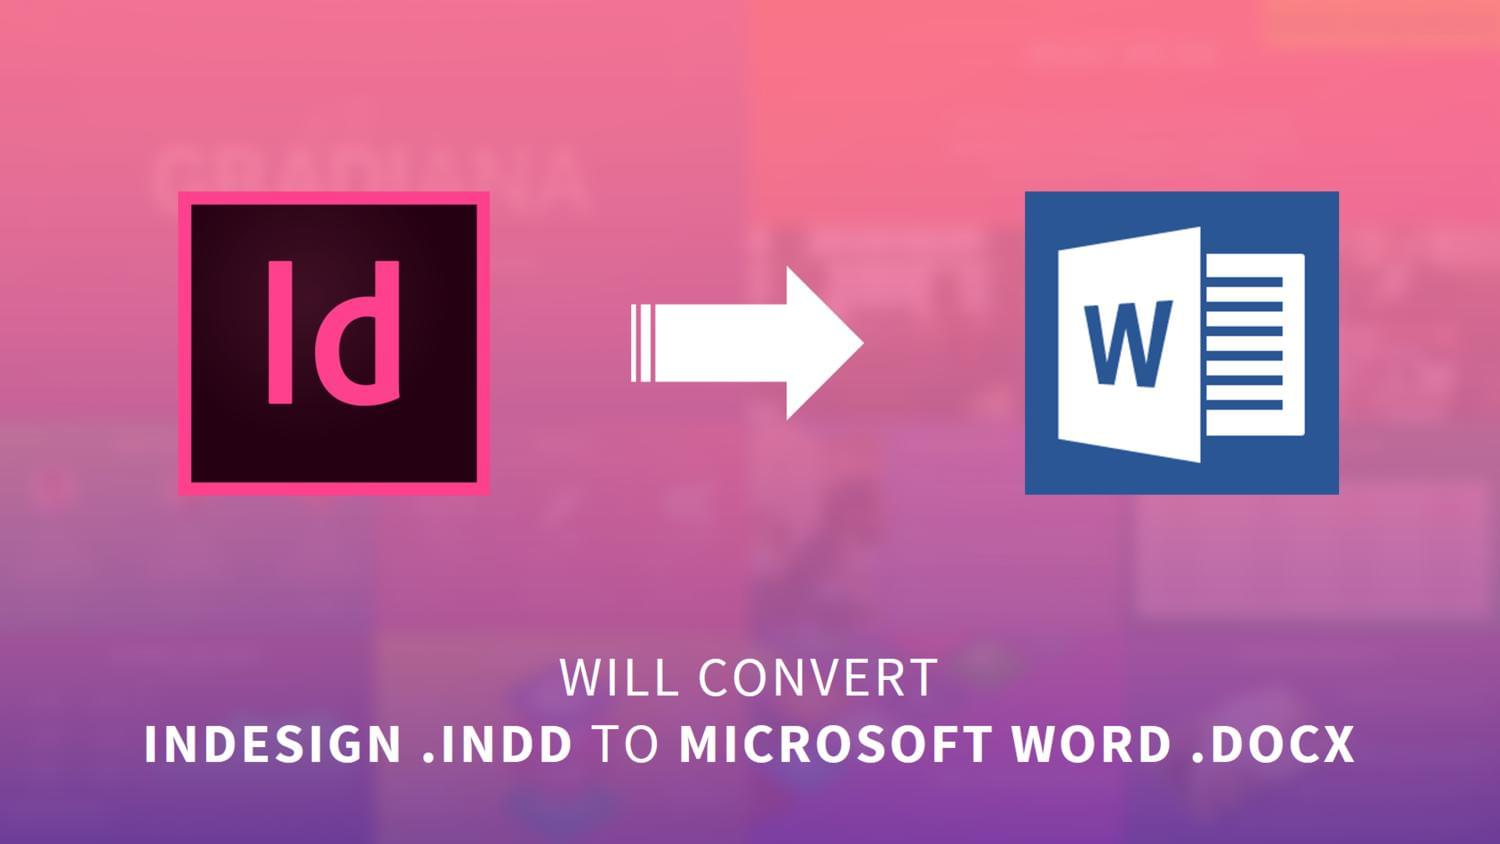 Convert InDesign to Microsoft Word by arvaone - 111200